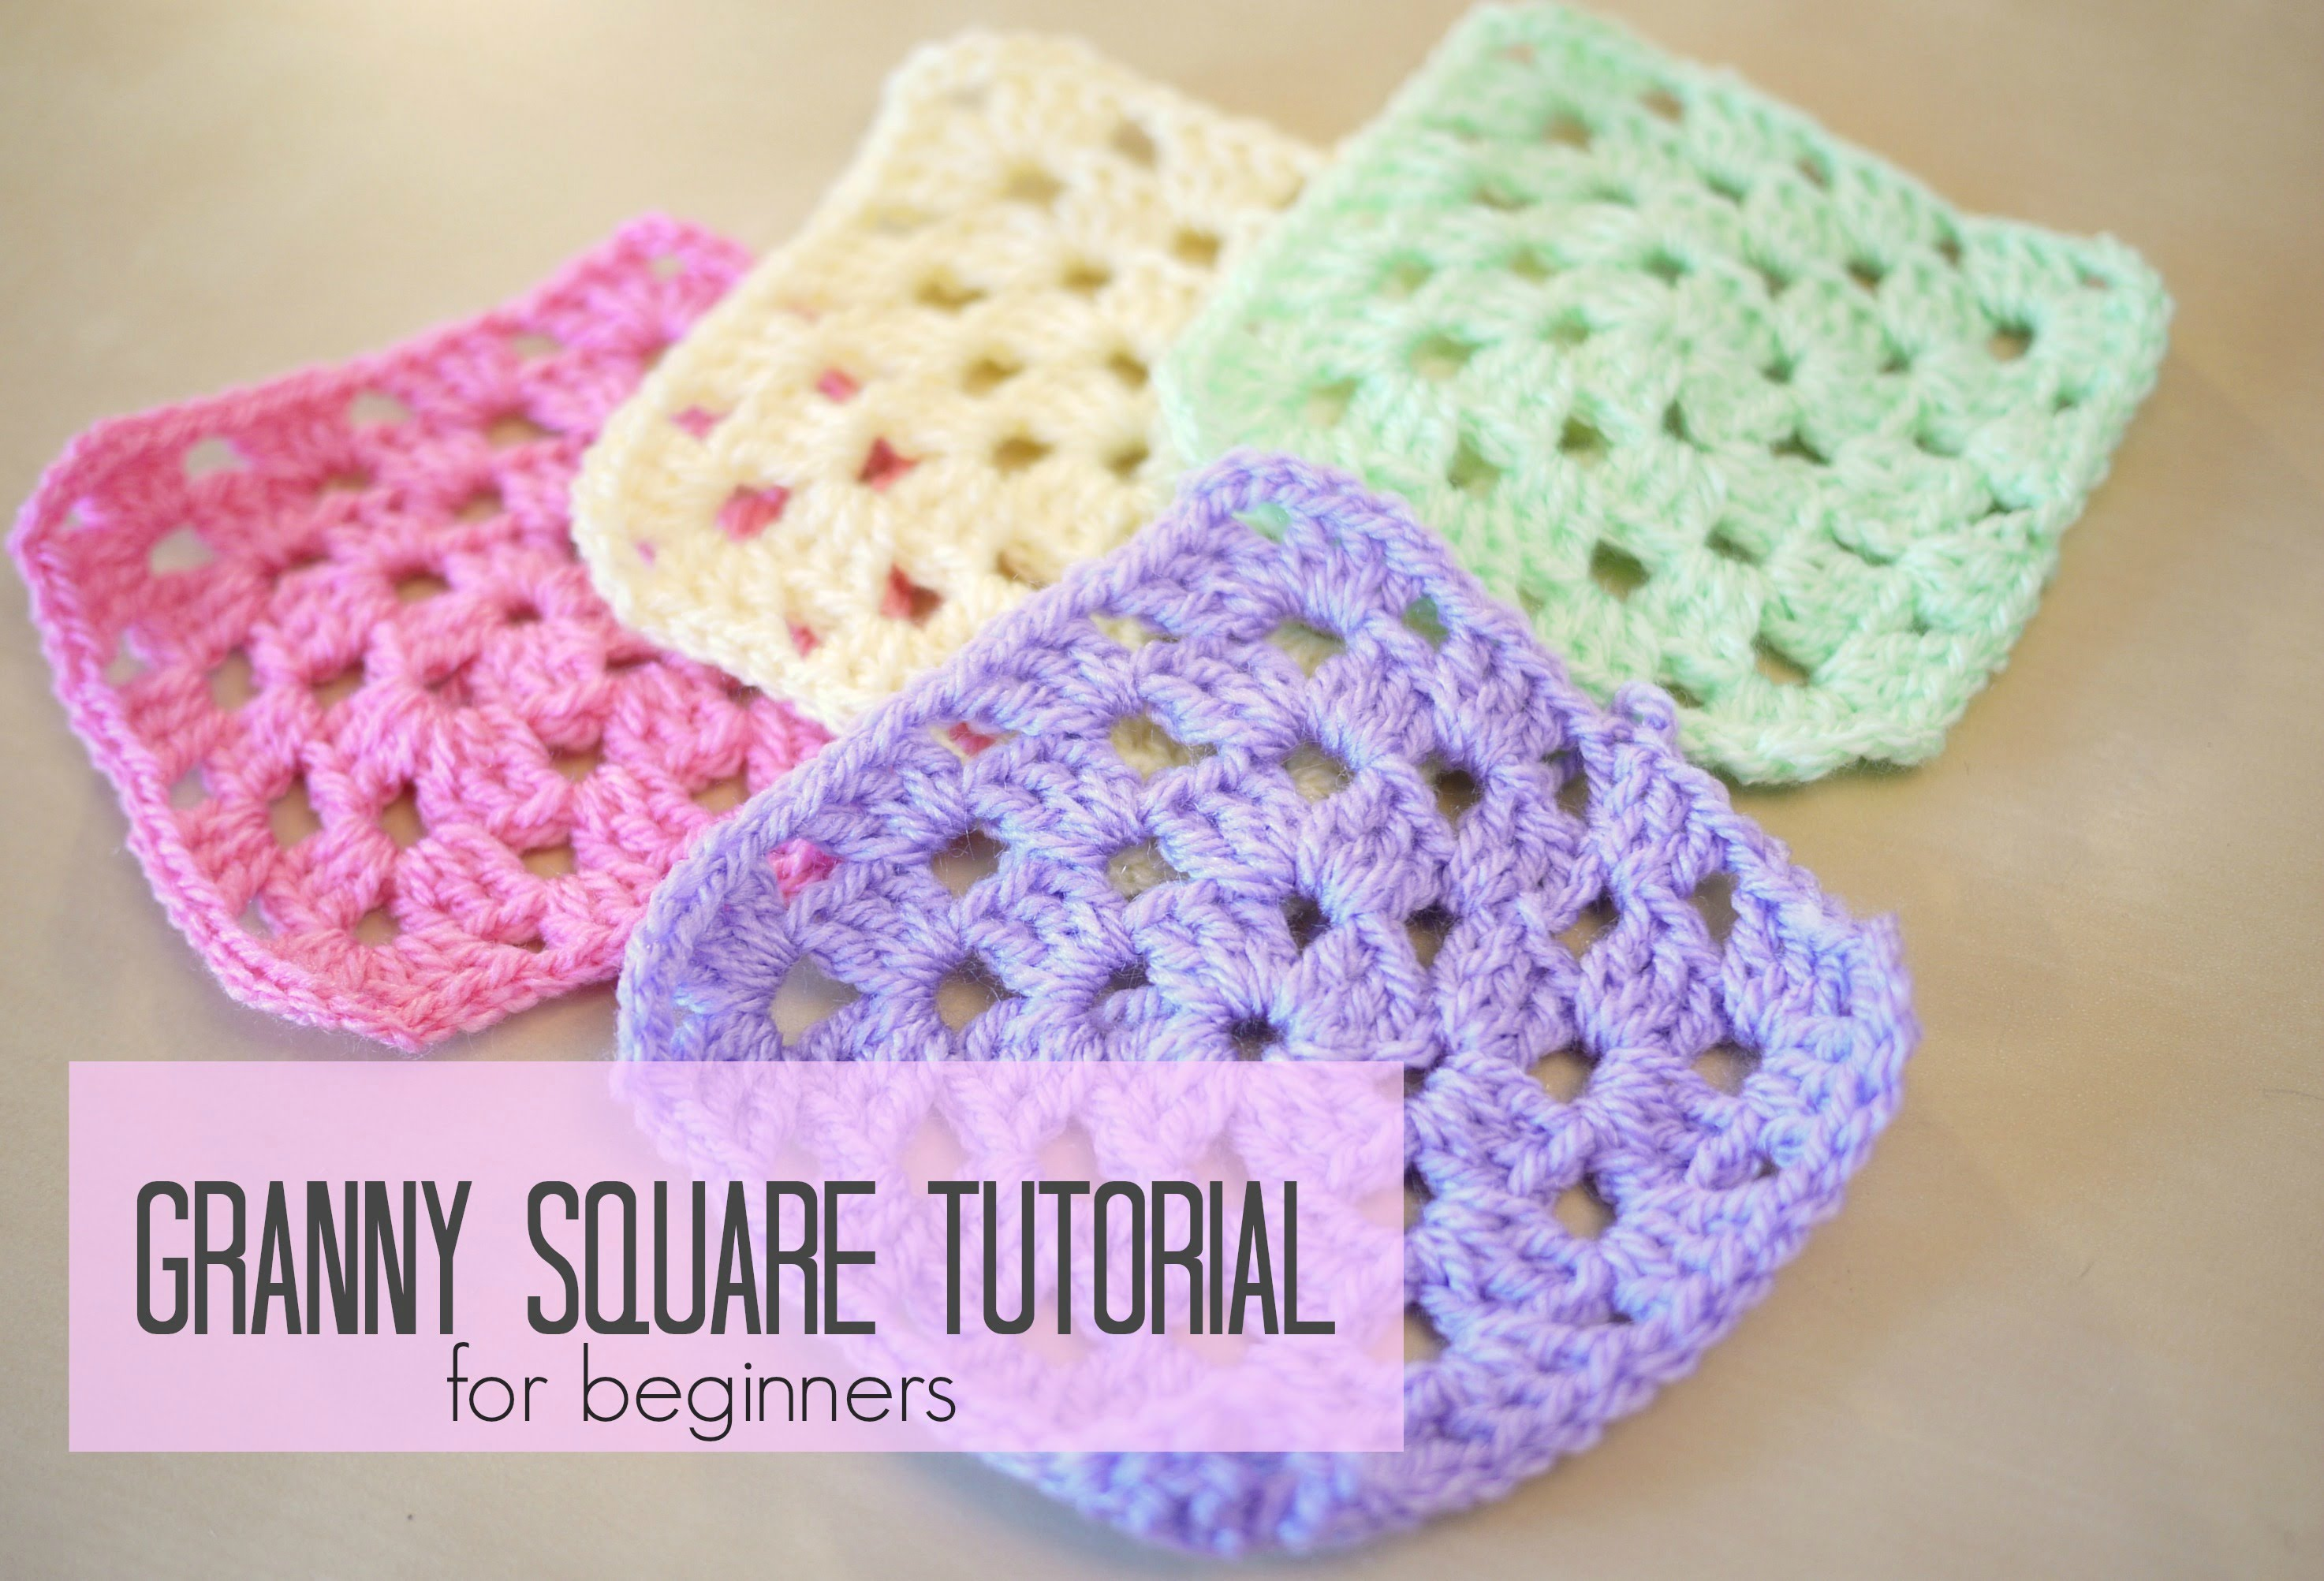 Crocheting For Beginners crochet: how to crochet a granny square for beginners | bella coco - sovkimu